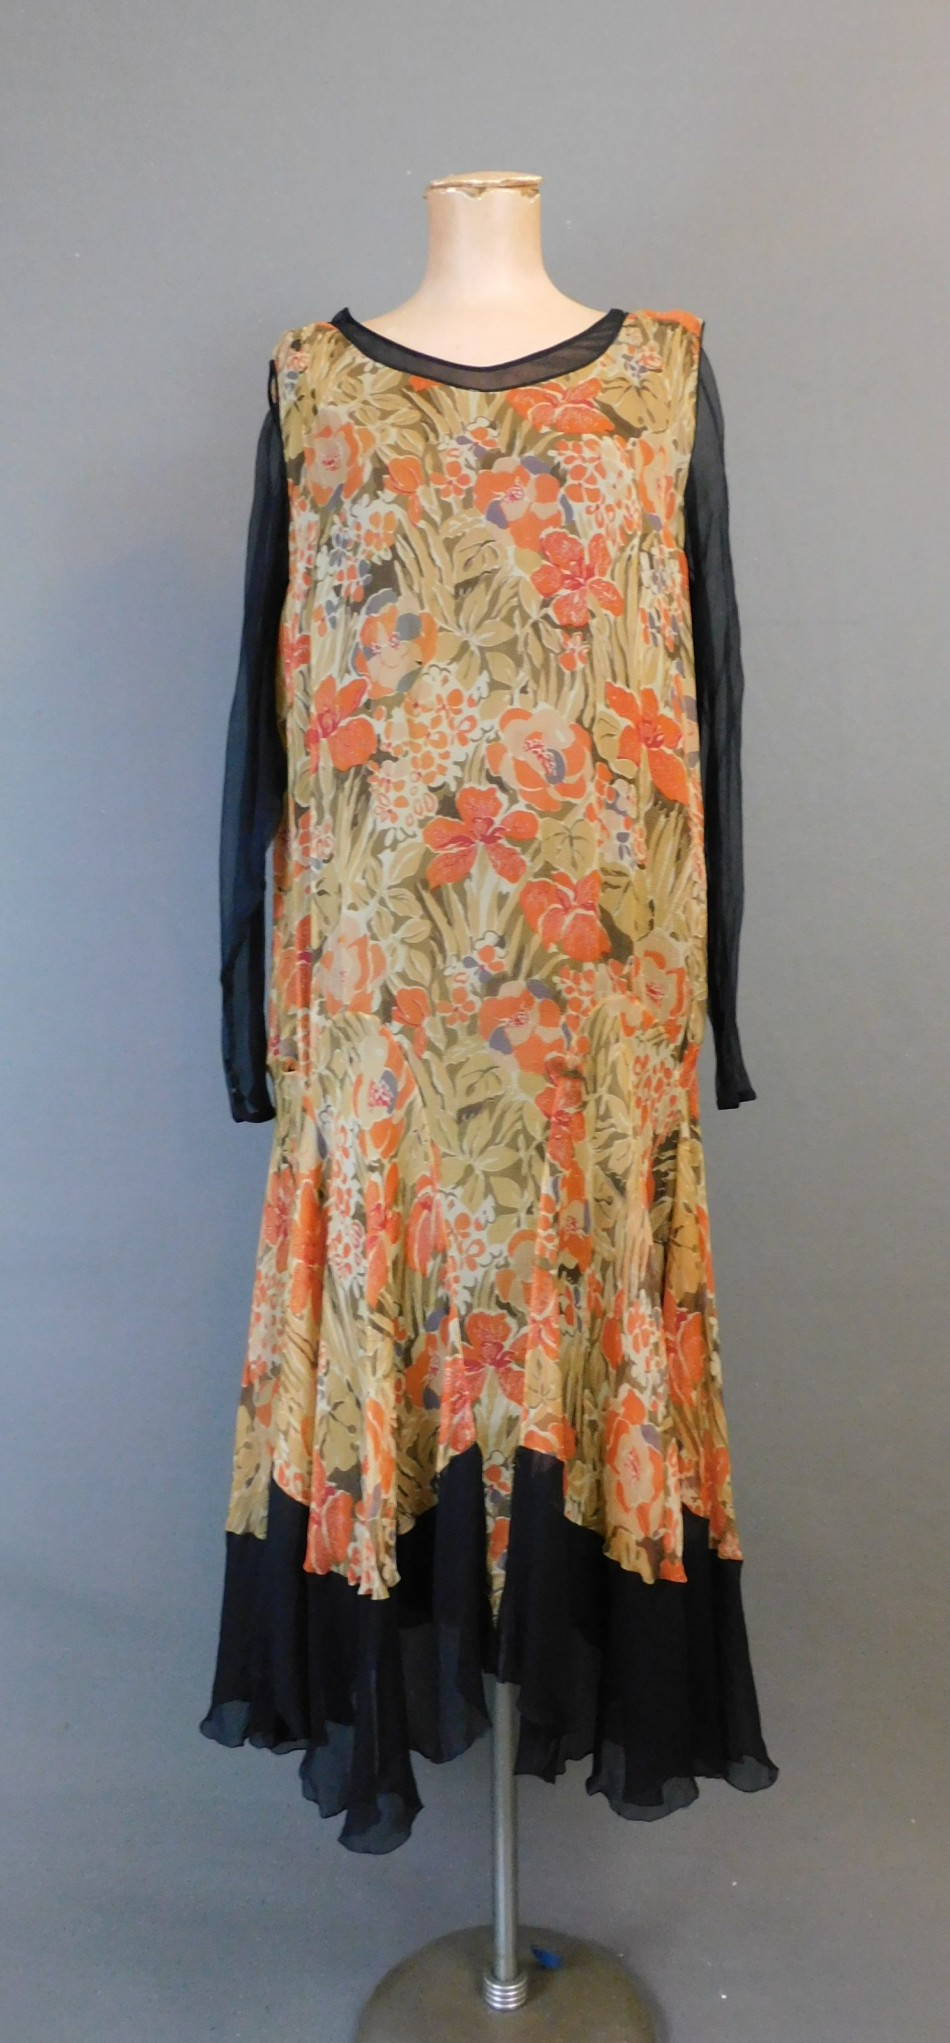 Vintage 1920s Black Chiffon and Floral Dress, fits 34 inch bust, some issues, display only